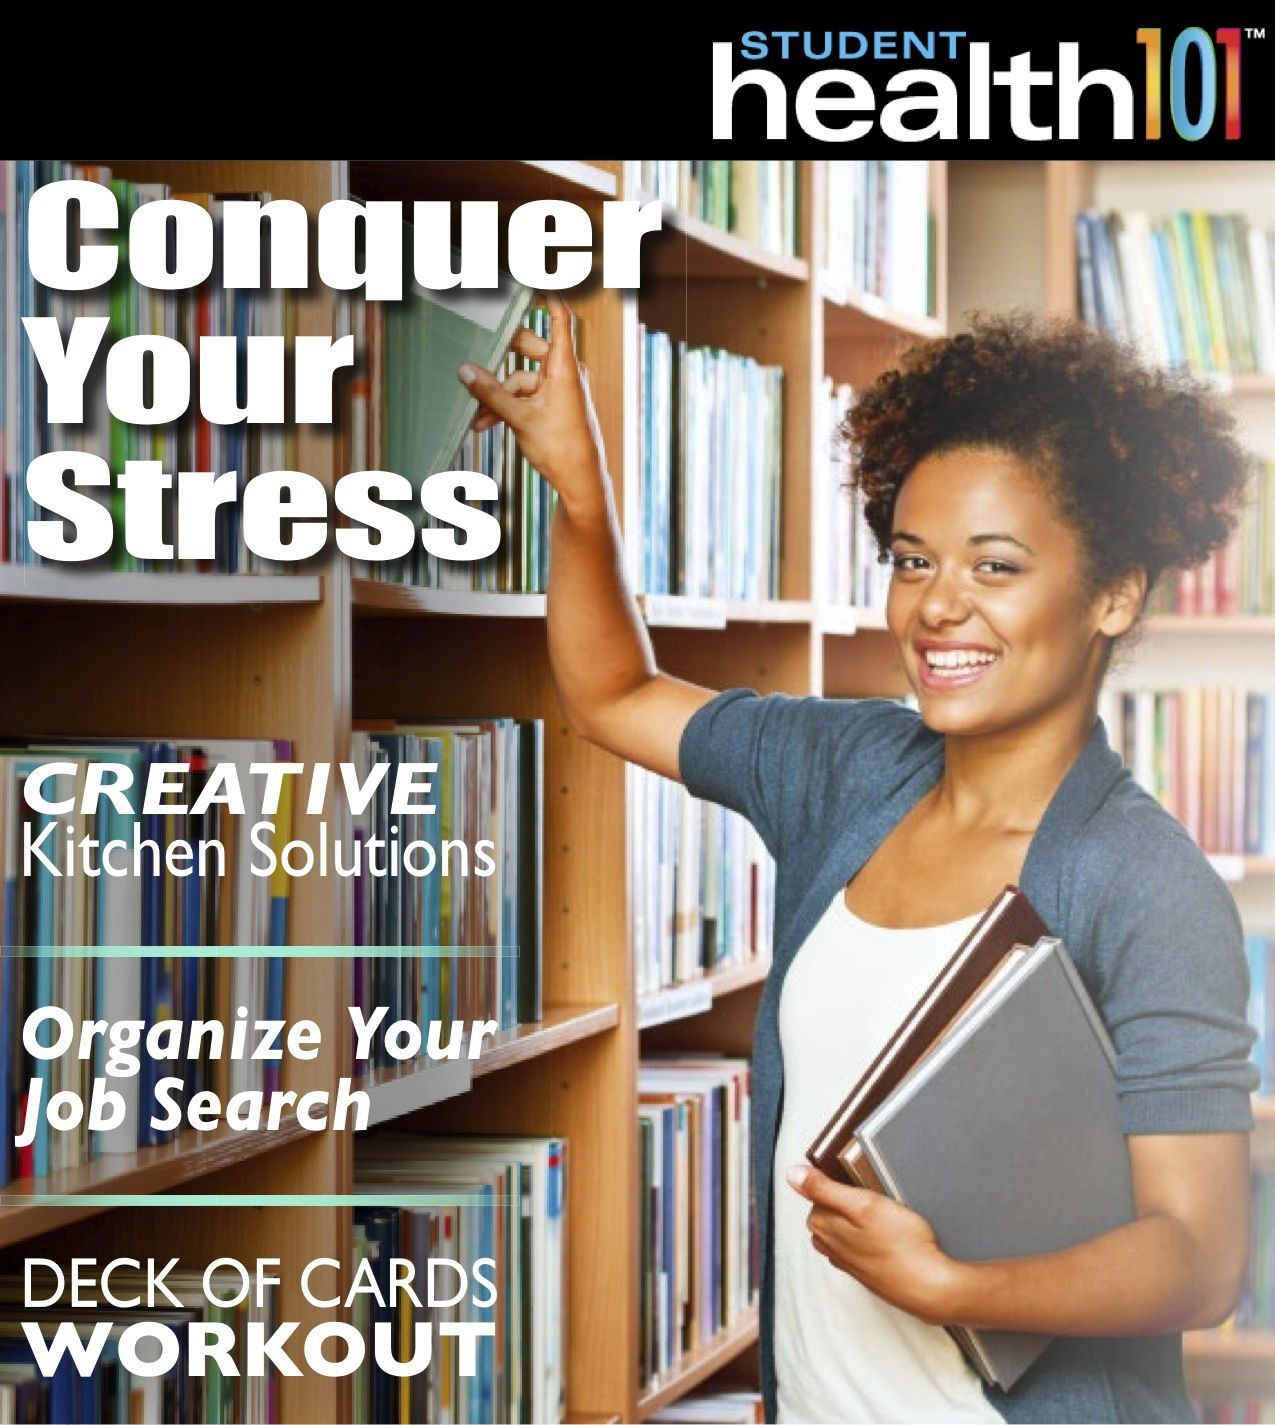 January 2014 issue! StudentHealth101 Students health